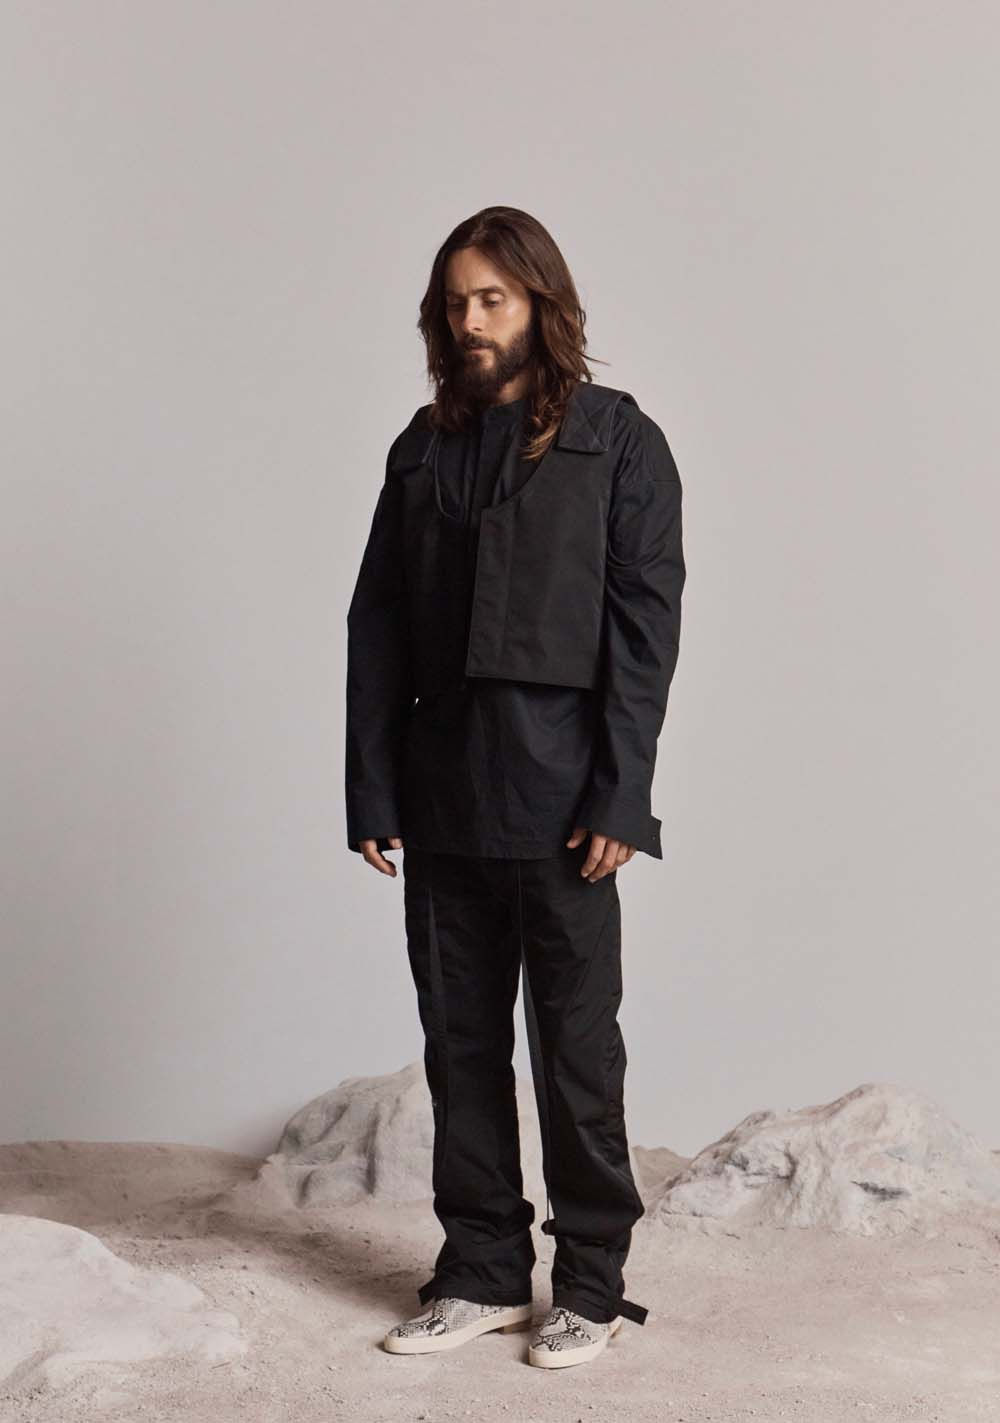 https_%2F%2Fhypebeast.com%2Fimage%2F2018%2F09%2Ffear-of-god-6-sixth-collection-jared-leto-nike-22.jpg